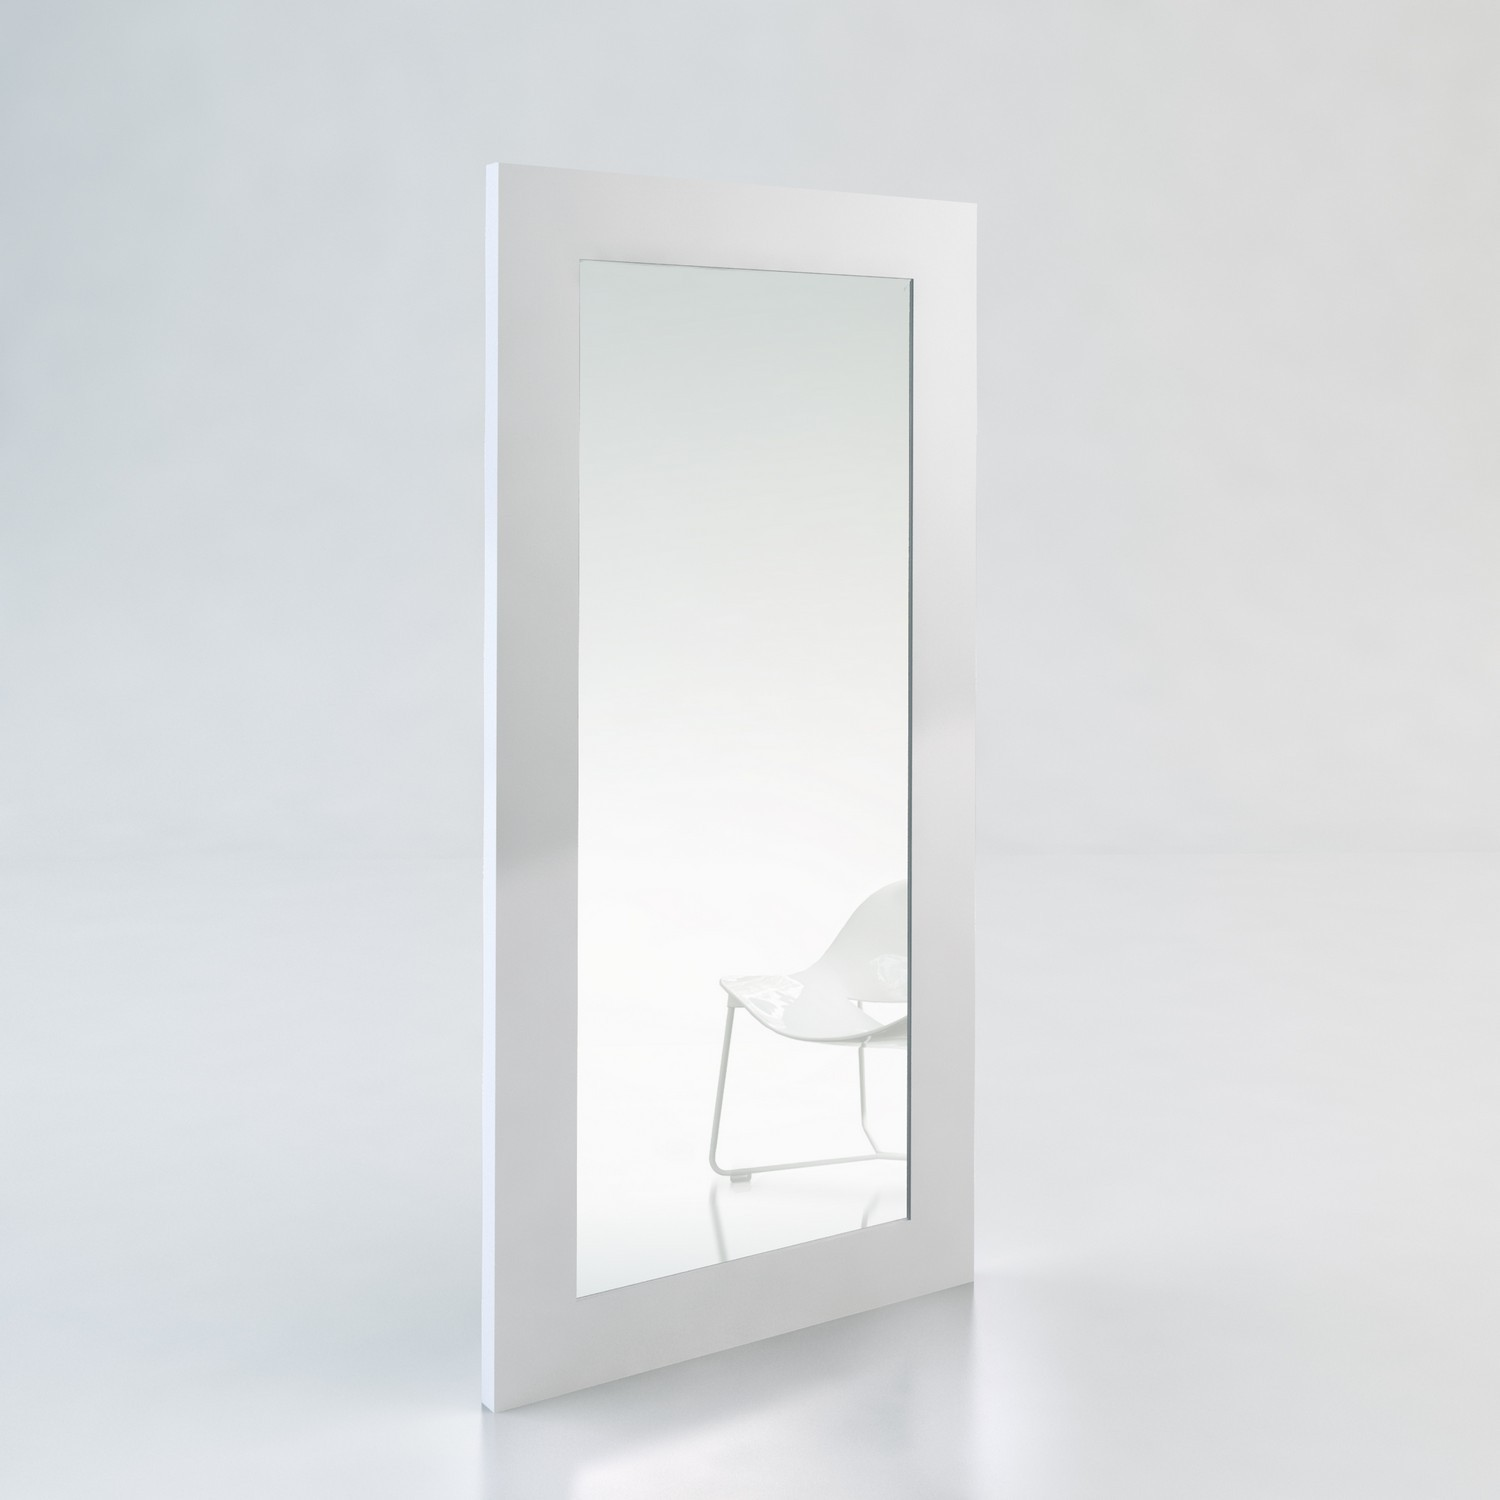 https://www.touchofmodern.com/sales/modloft-living-a66c92c5-f601-4bb1-9ec7-f6793353394c/norfolk-mirror?share_invite_token=WQ3PD6V0